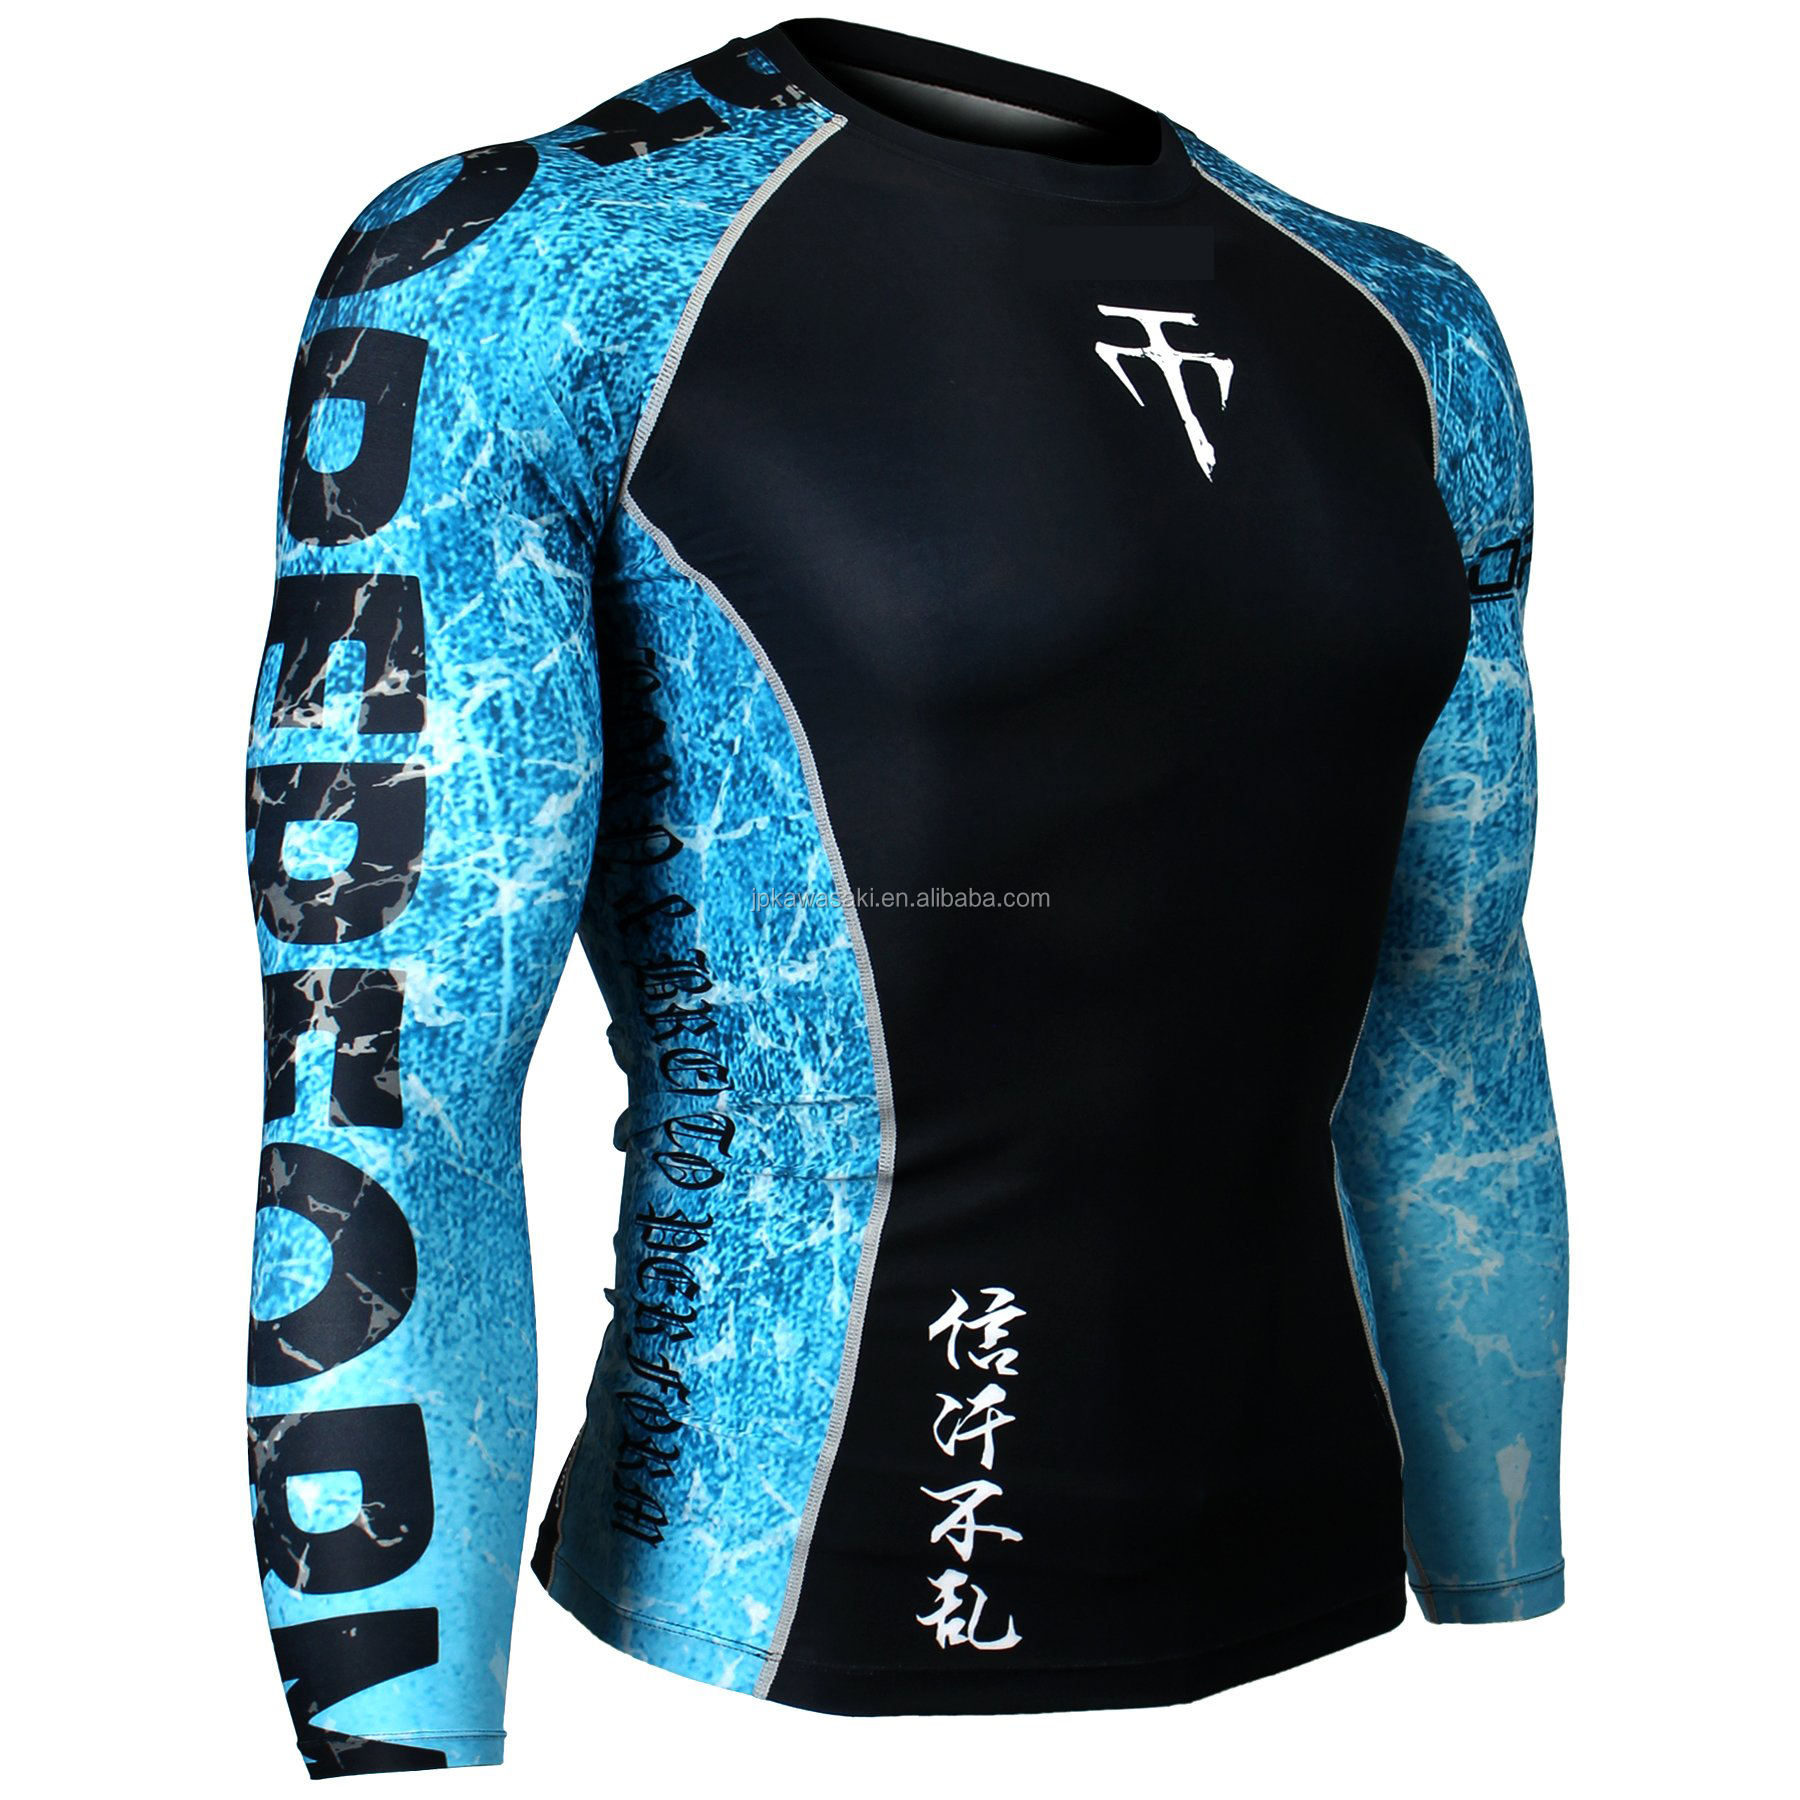 2021 Desin Your Own MMA Men's Rashguard Shirt Custom Sublimated Compression bjj Rash Guard